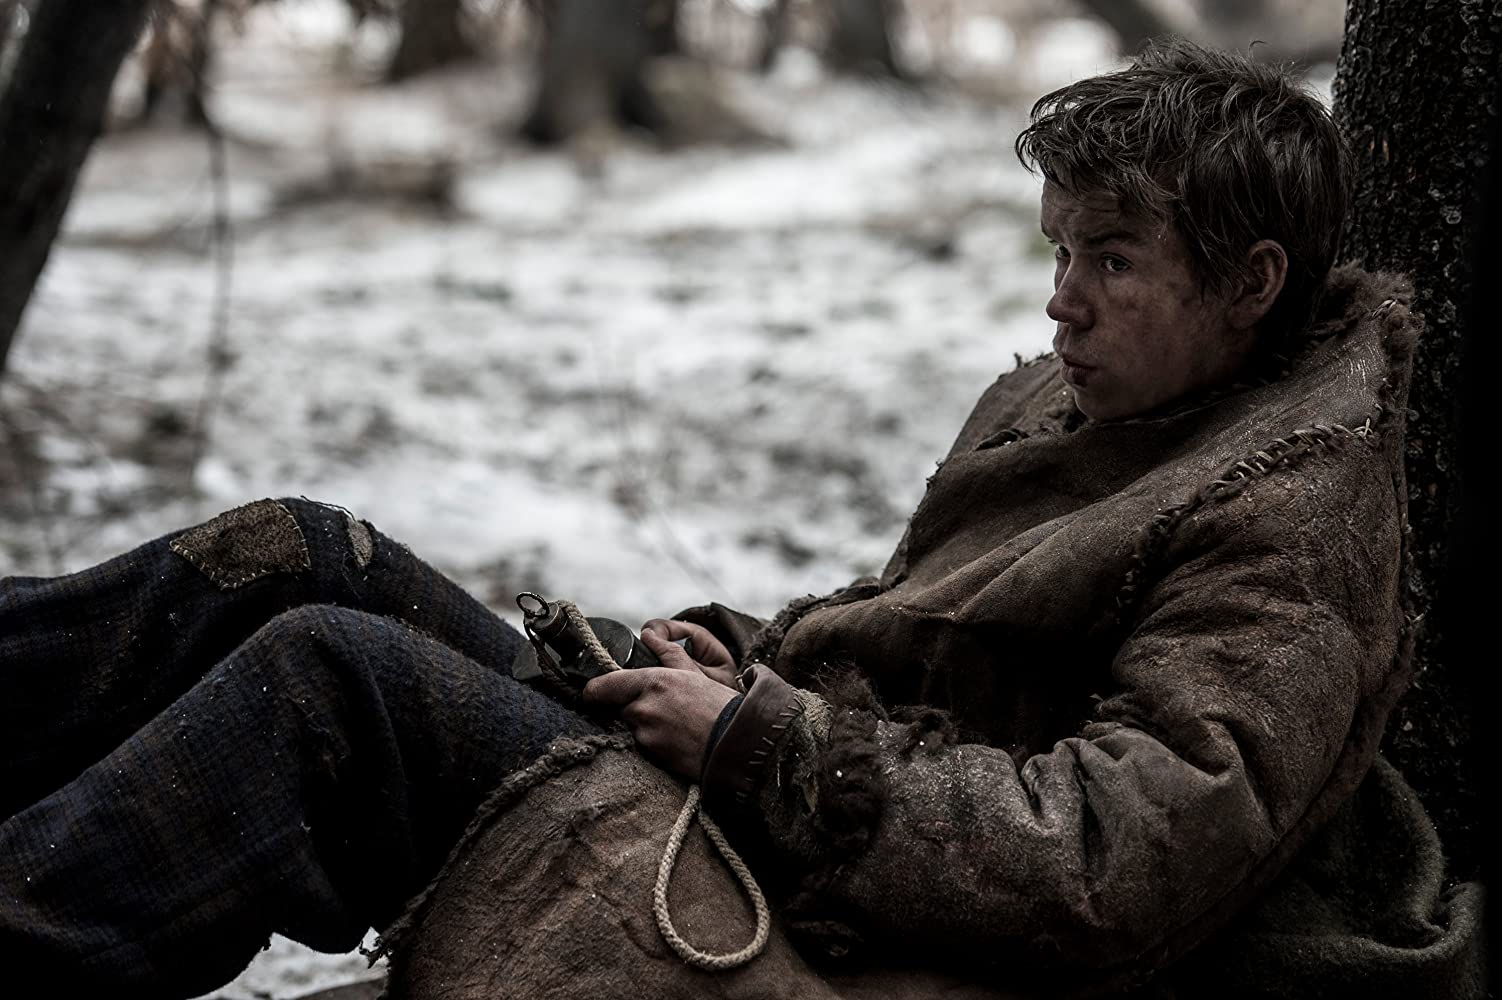 Will Poulter in The Revenant (2015)